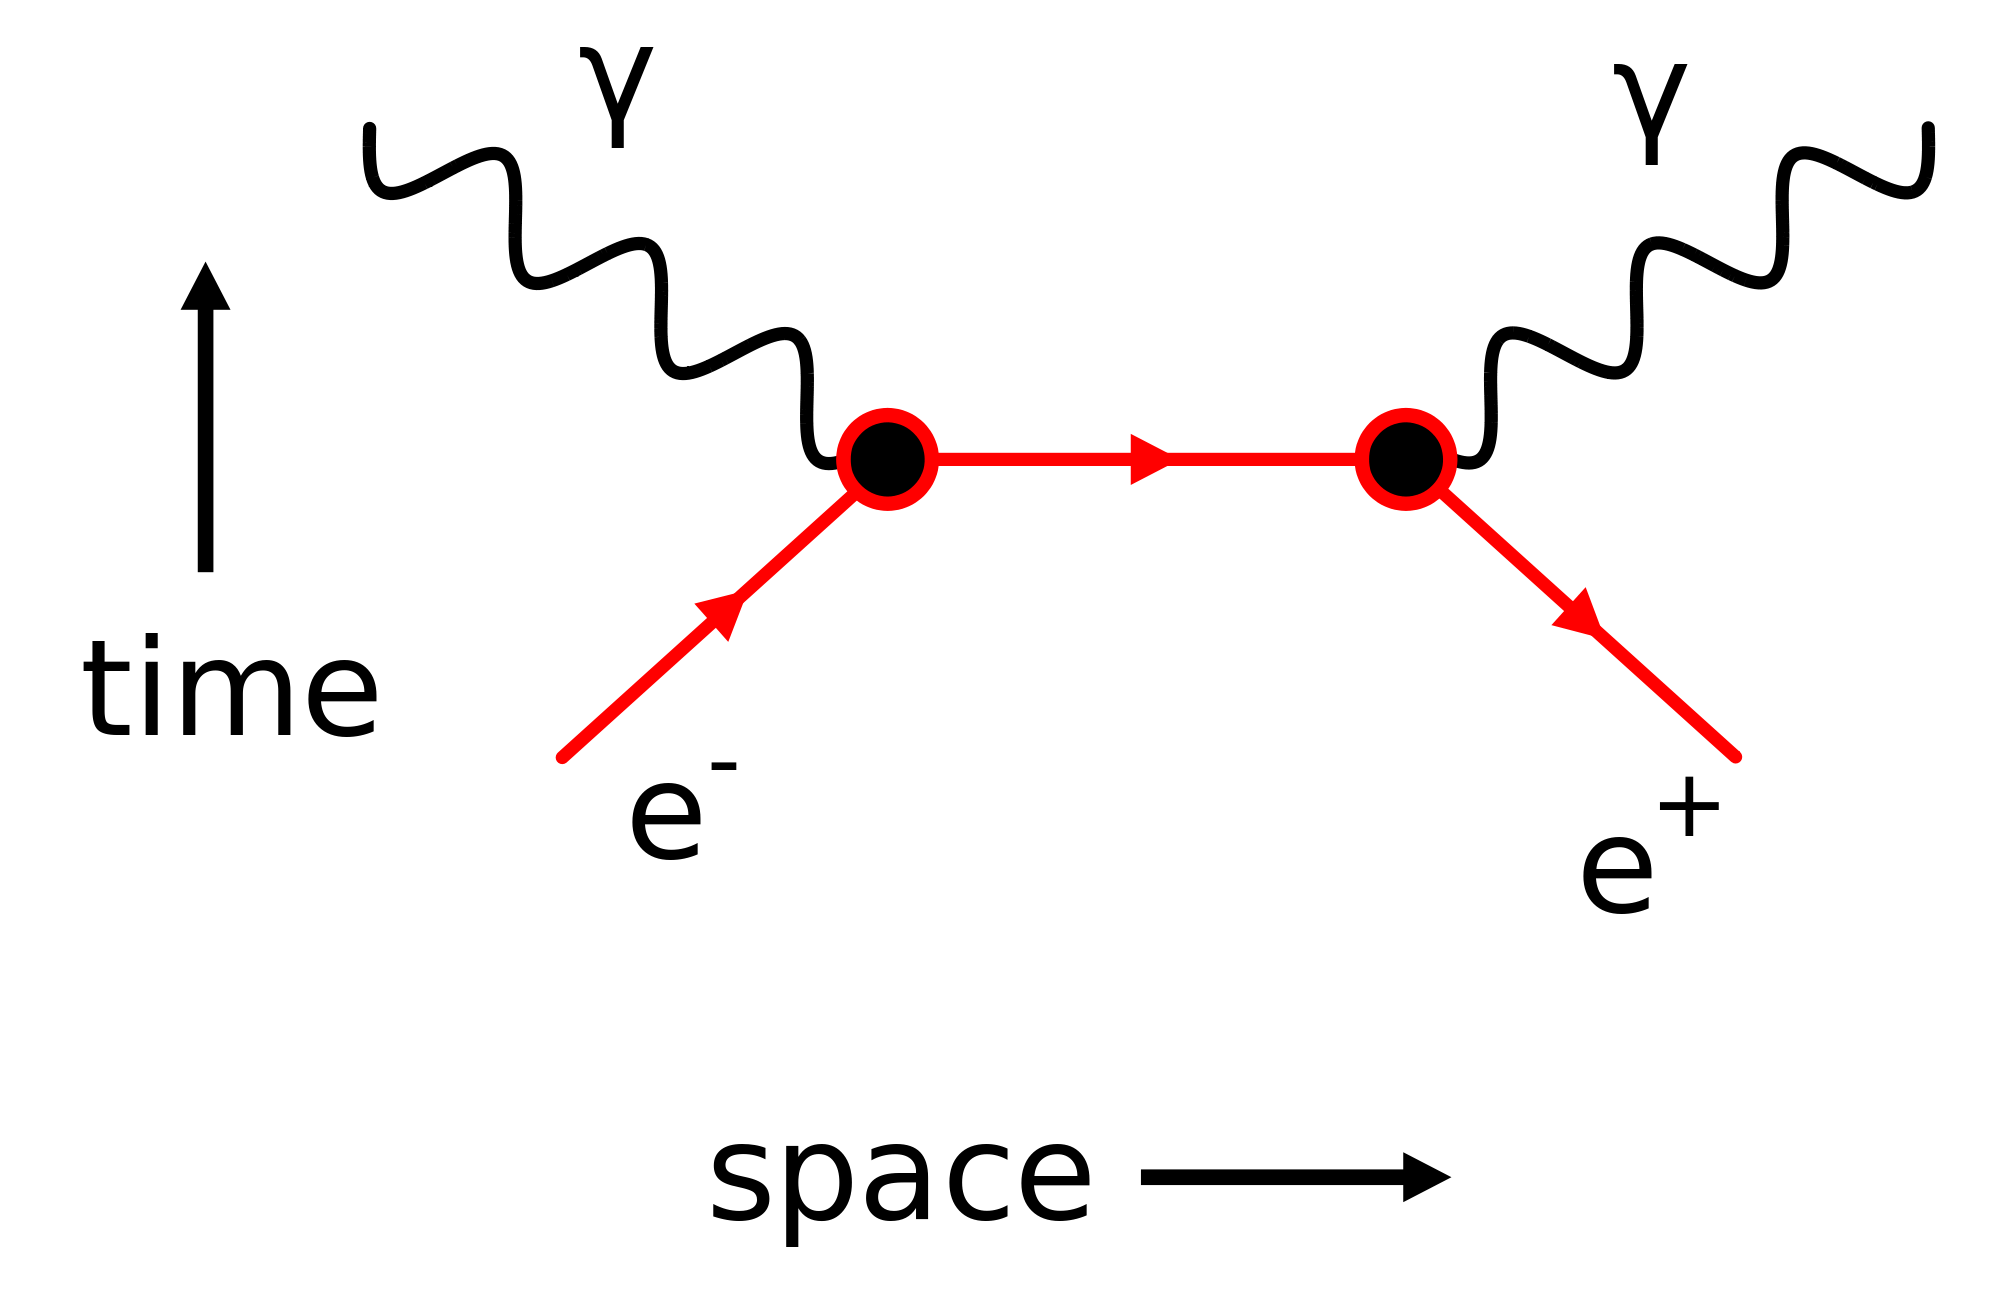 Electron Positron Annihilation With Photon Production